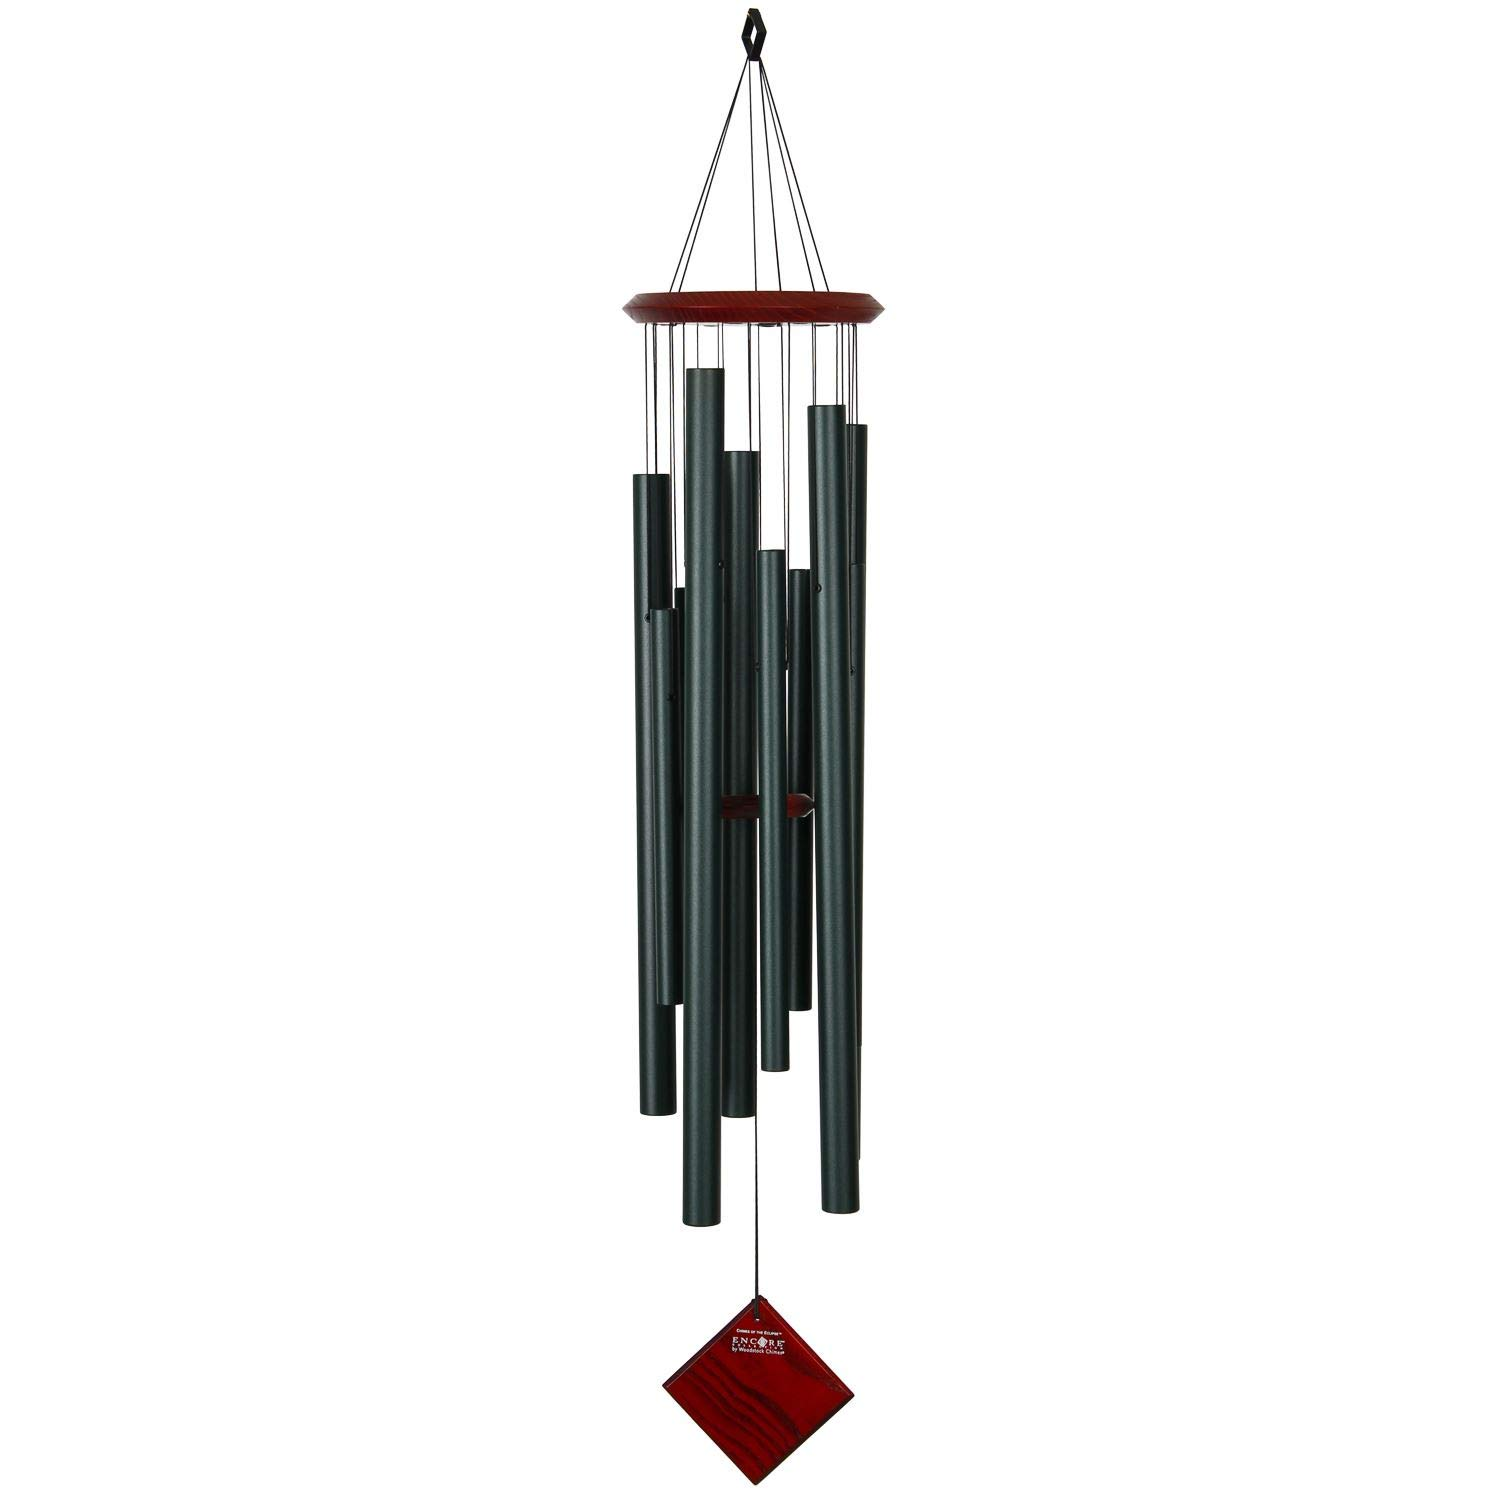 Woodstock Pacific Blue Bells of Paradise Large Chimes Outdoor Garden Wind Chime